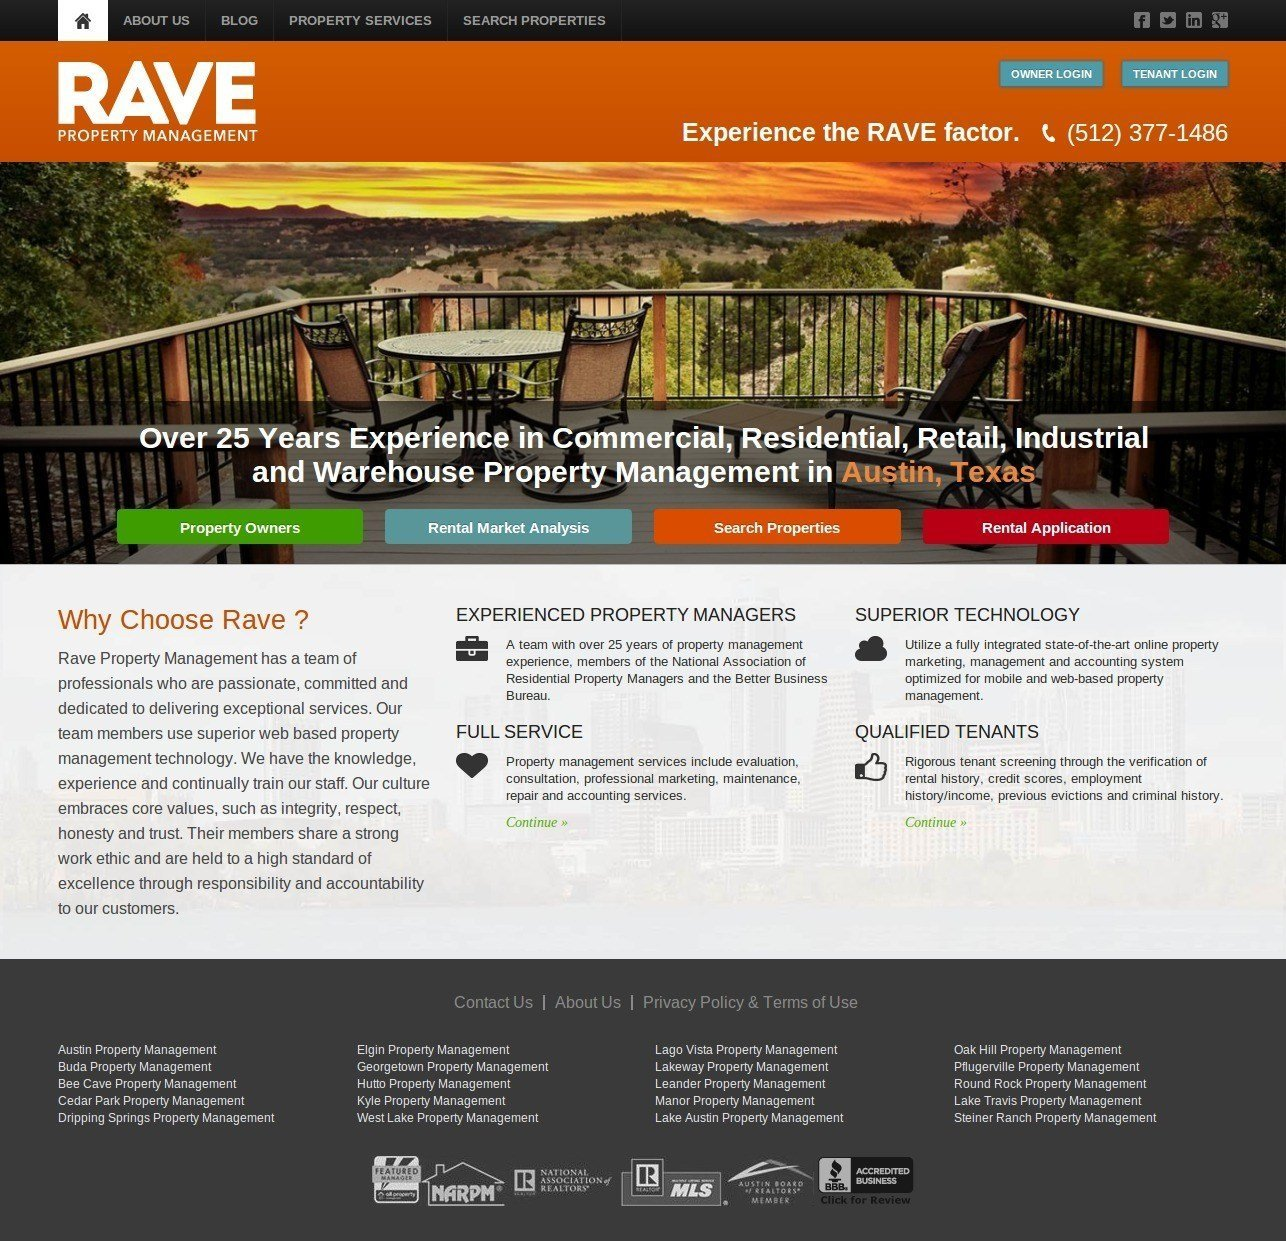 Rave-Property-Management